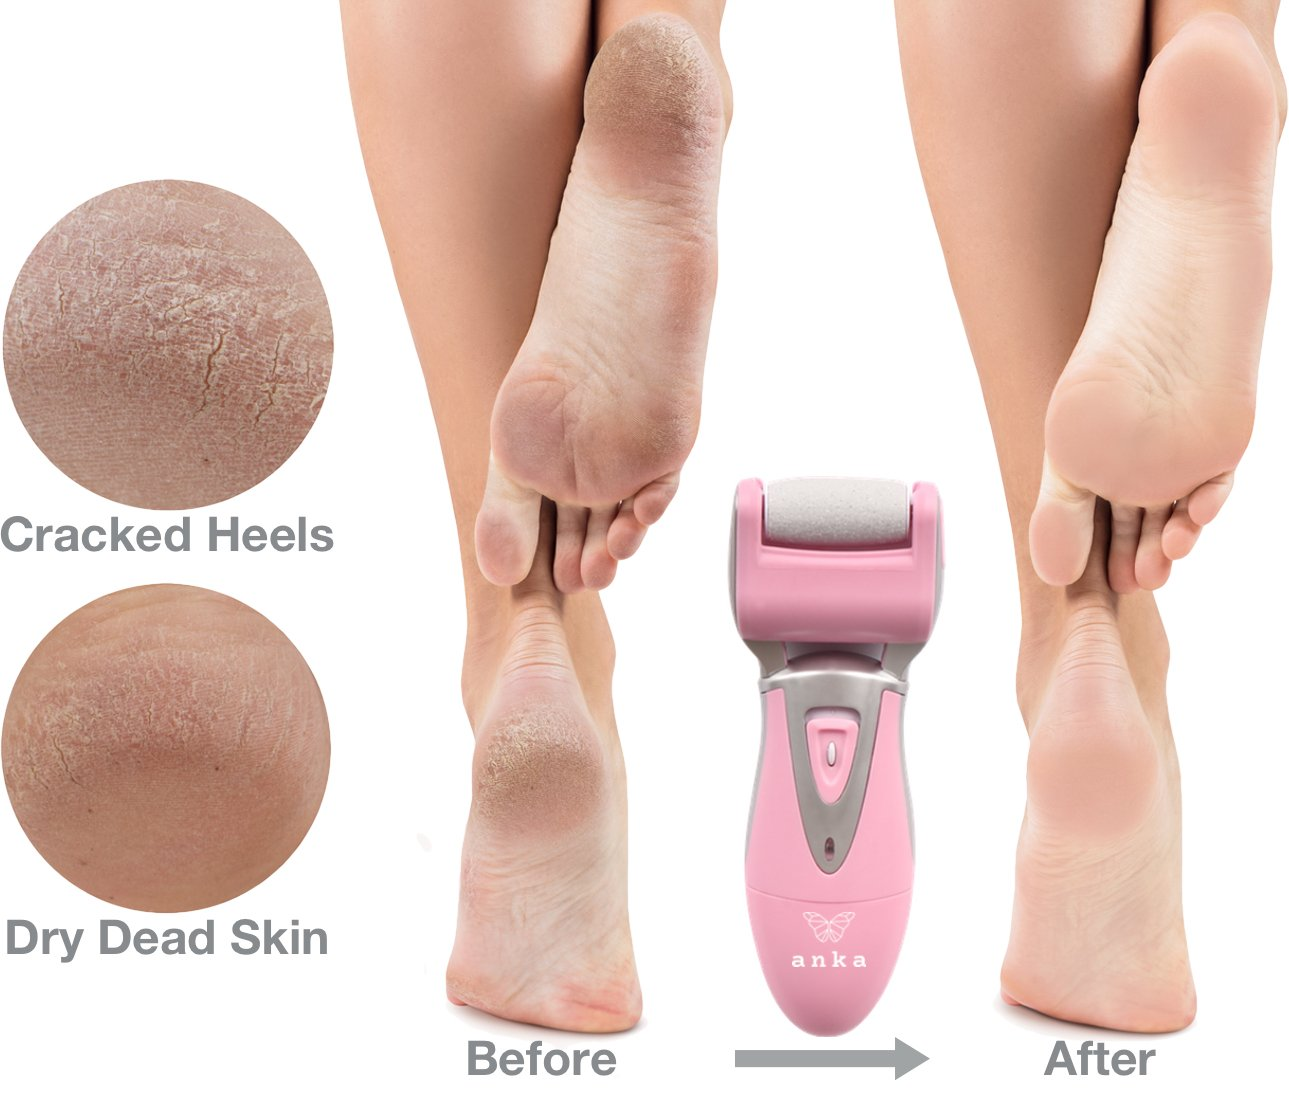 **70% Off Summer Sale ** Rechargeable Pedicure Foot File - Electric Callus Remover & Foot Grinder for Rough & Dead Skin for Professional Home Spa (Wet or Dry Feet) by Anka (Image #3)